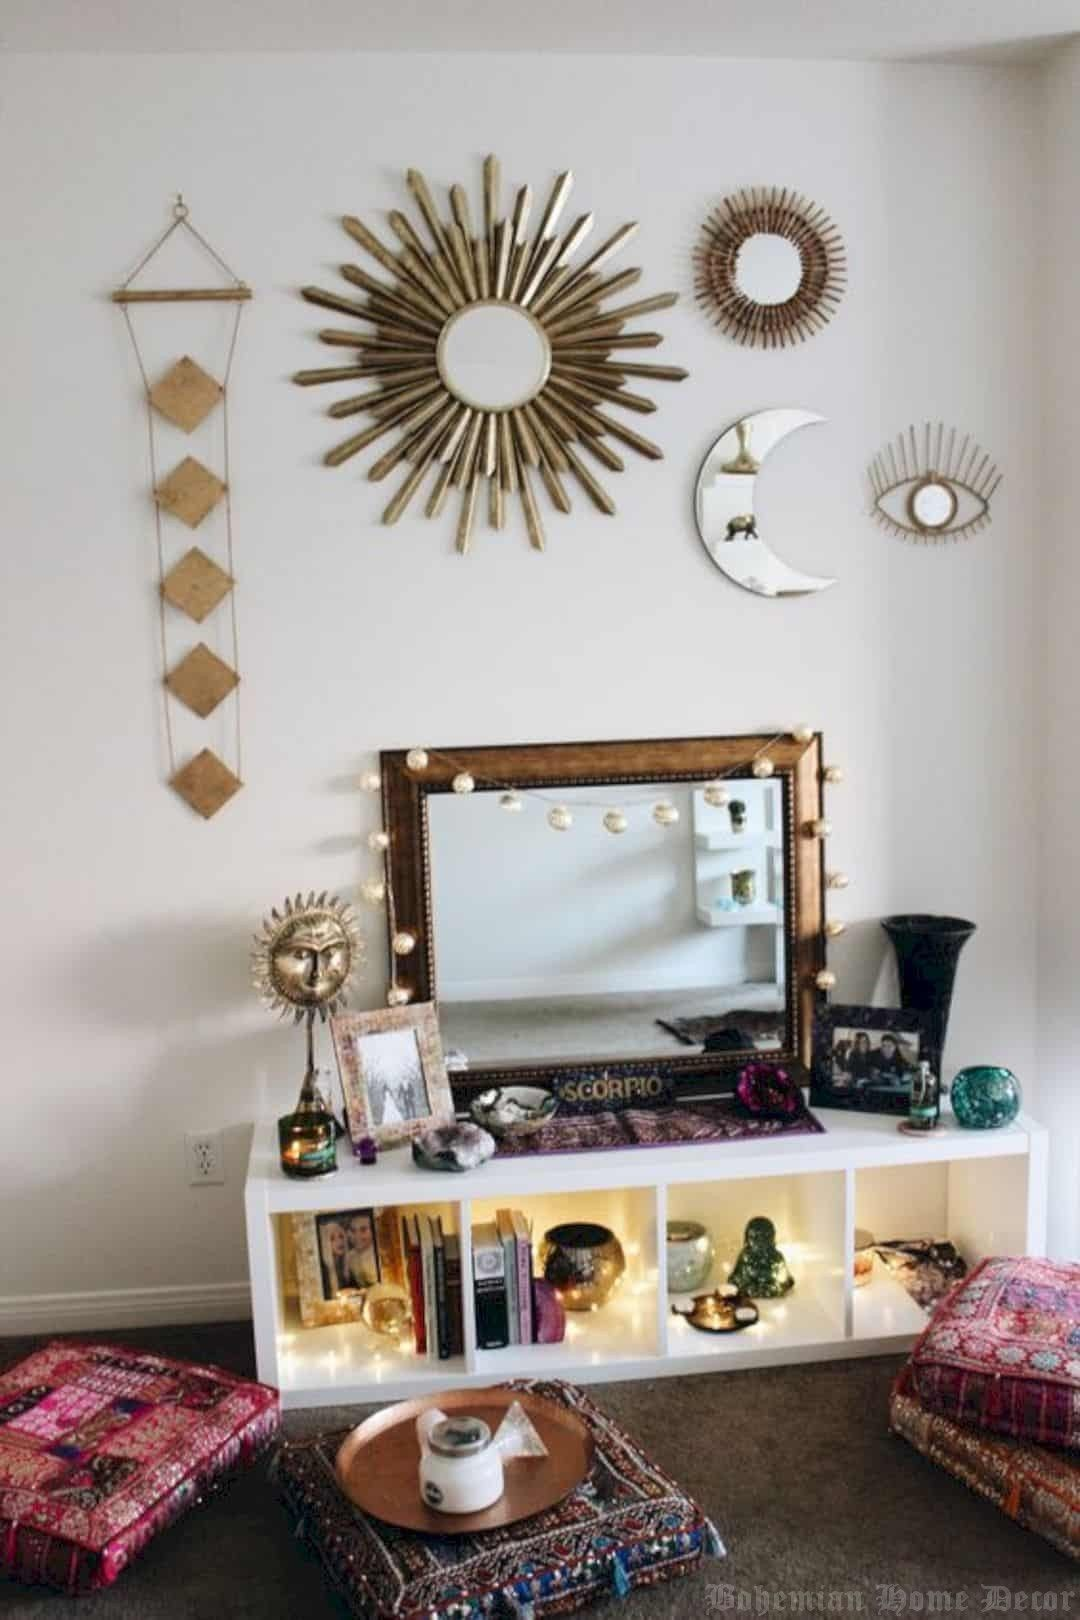 10 Ways To Reinvent Your Bohemian Home Decor Oct 2020